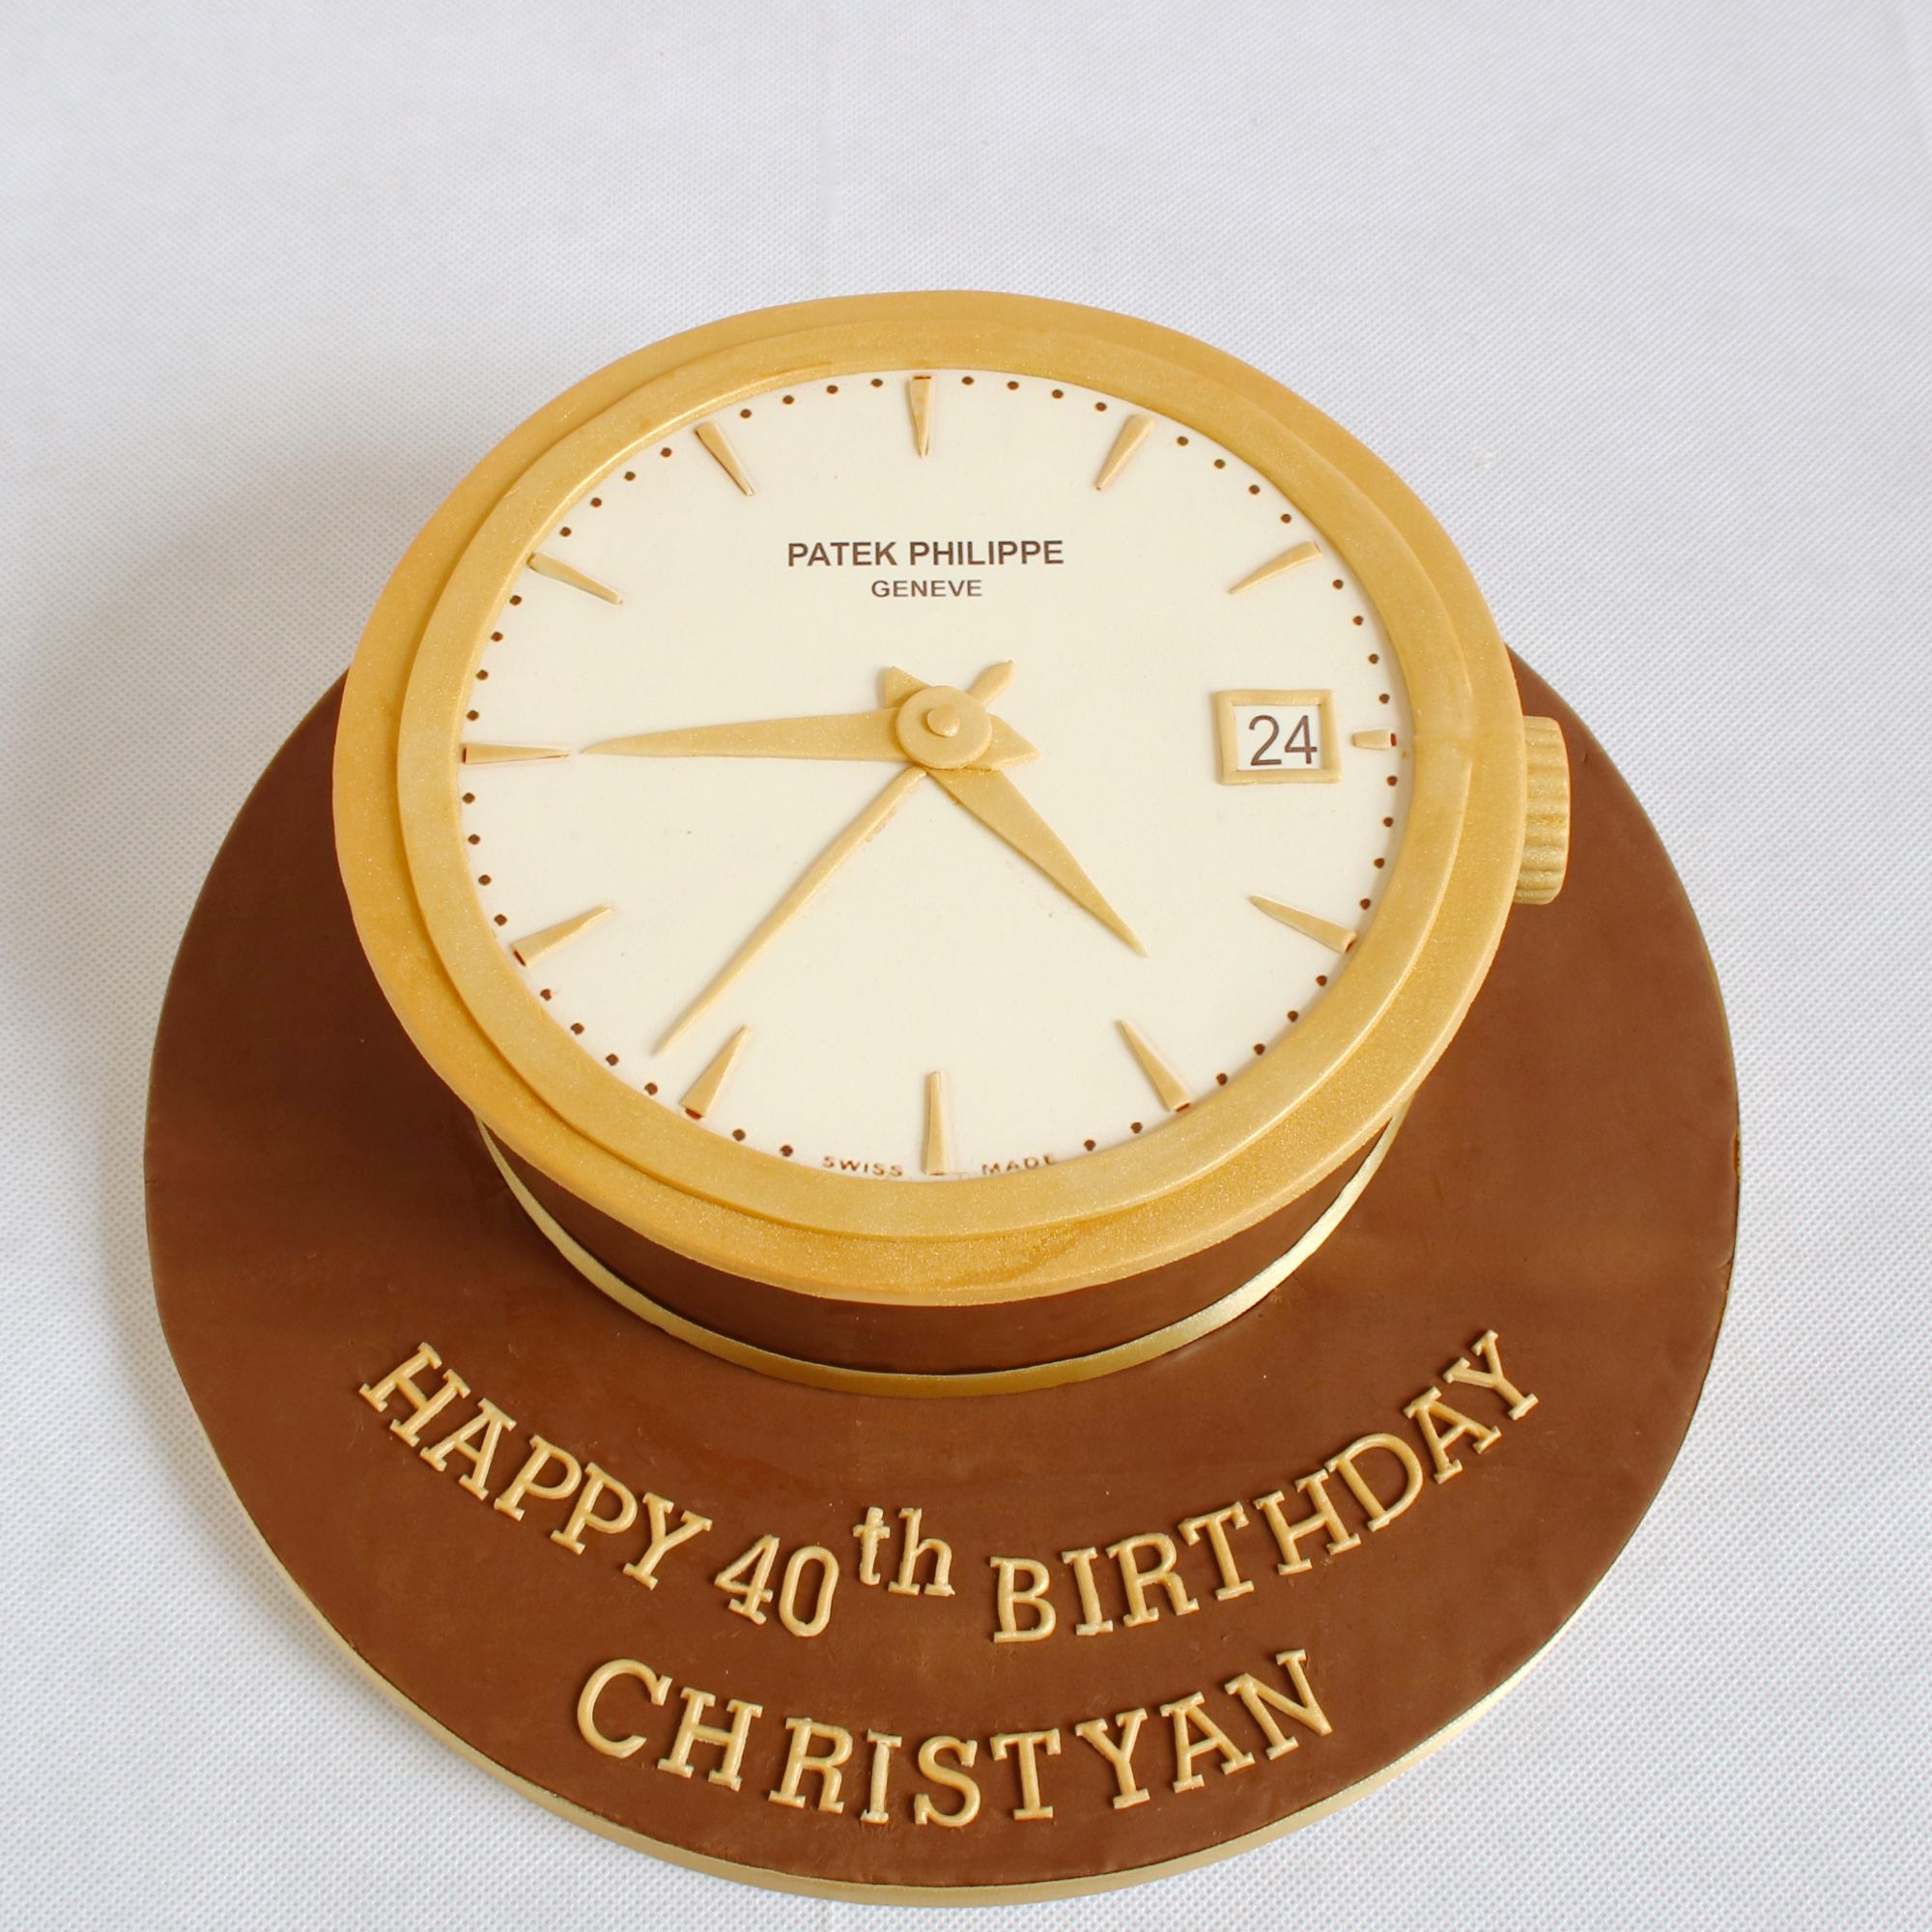 philippe patek gold watch birthday cake